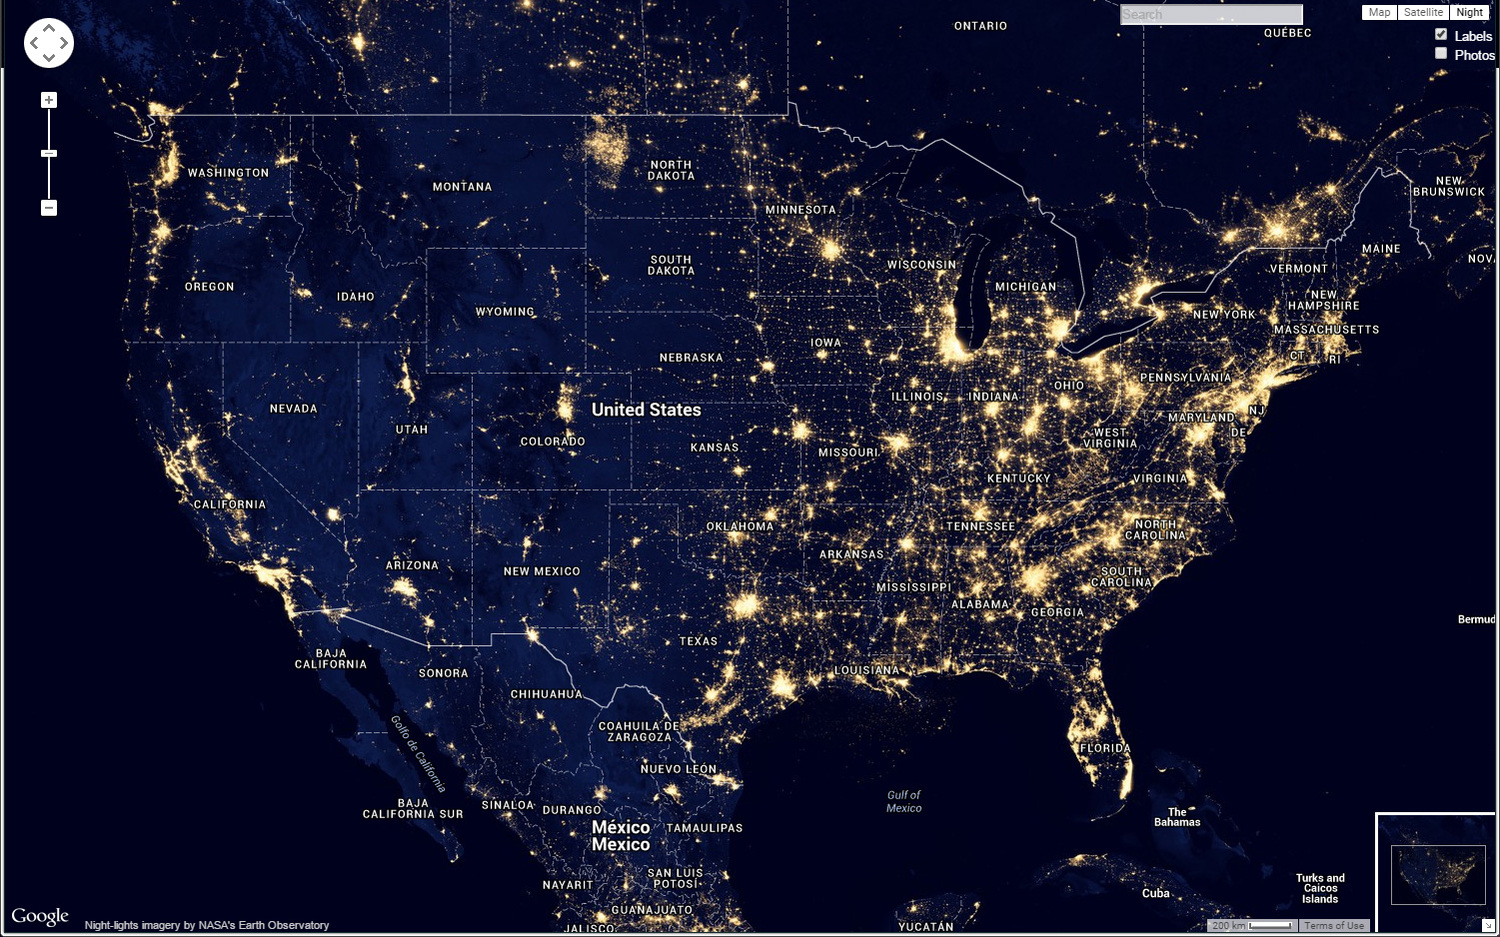 Find Map Of United States.How To Find Dark Skies For Night Photography Night Photography